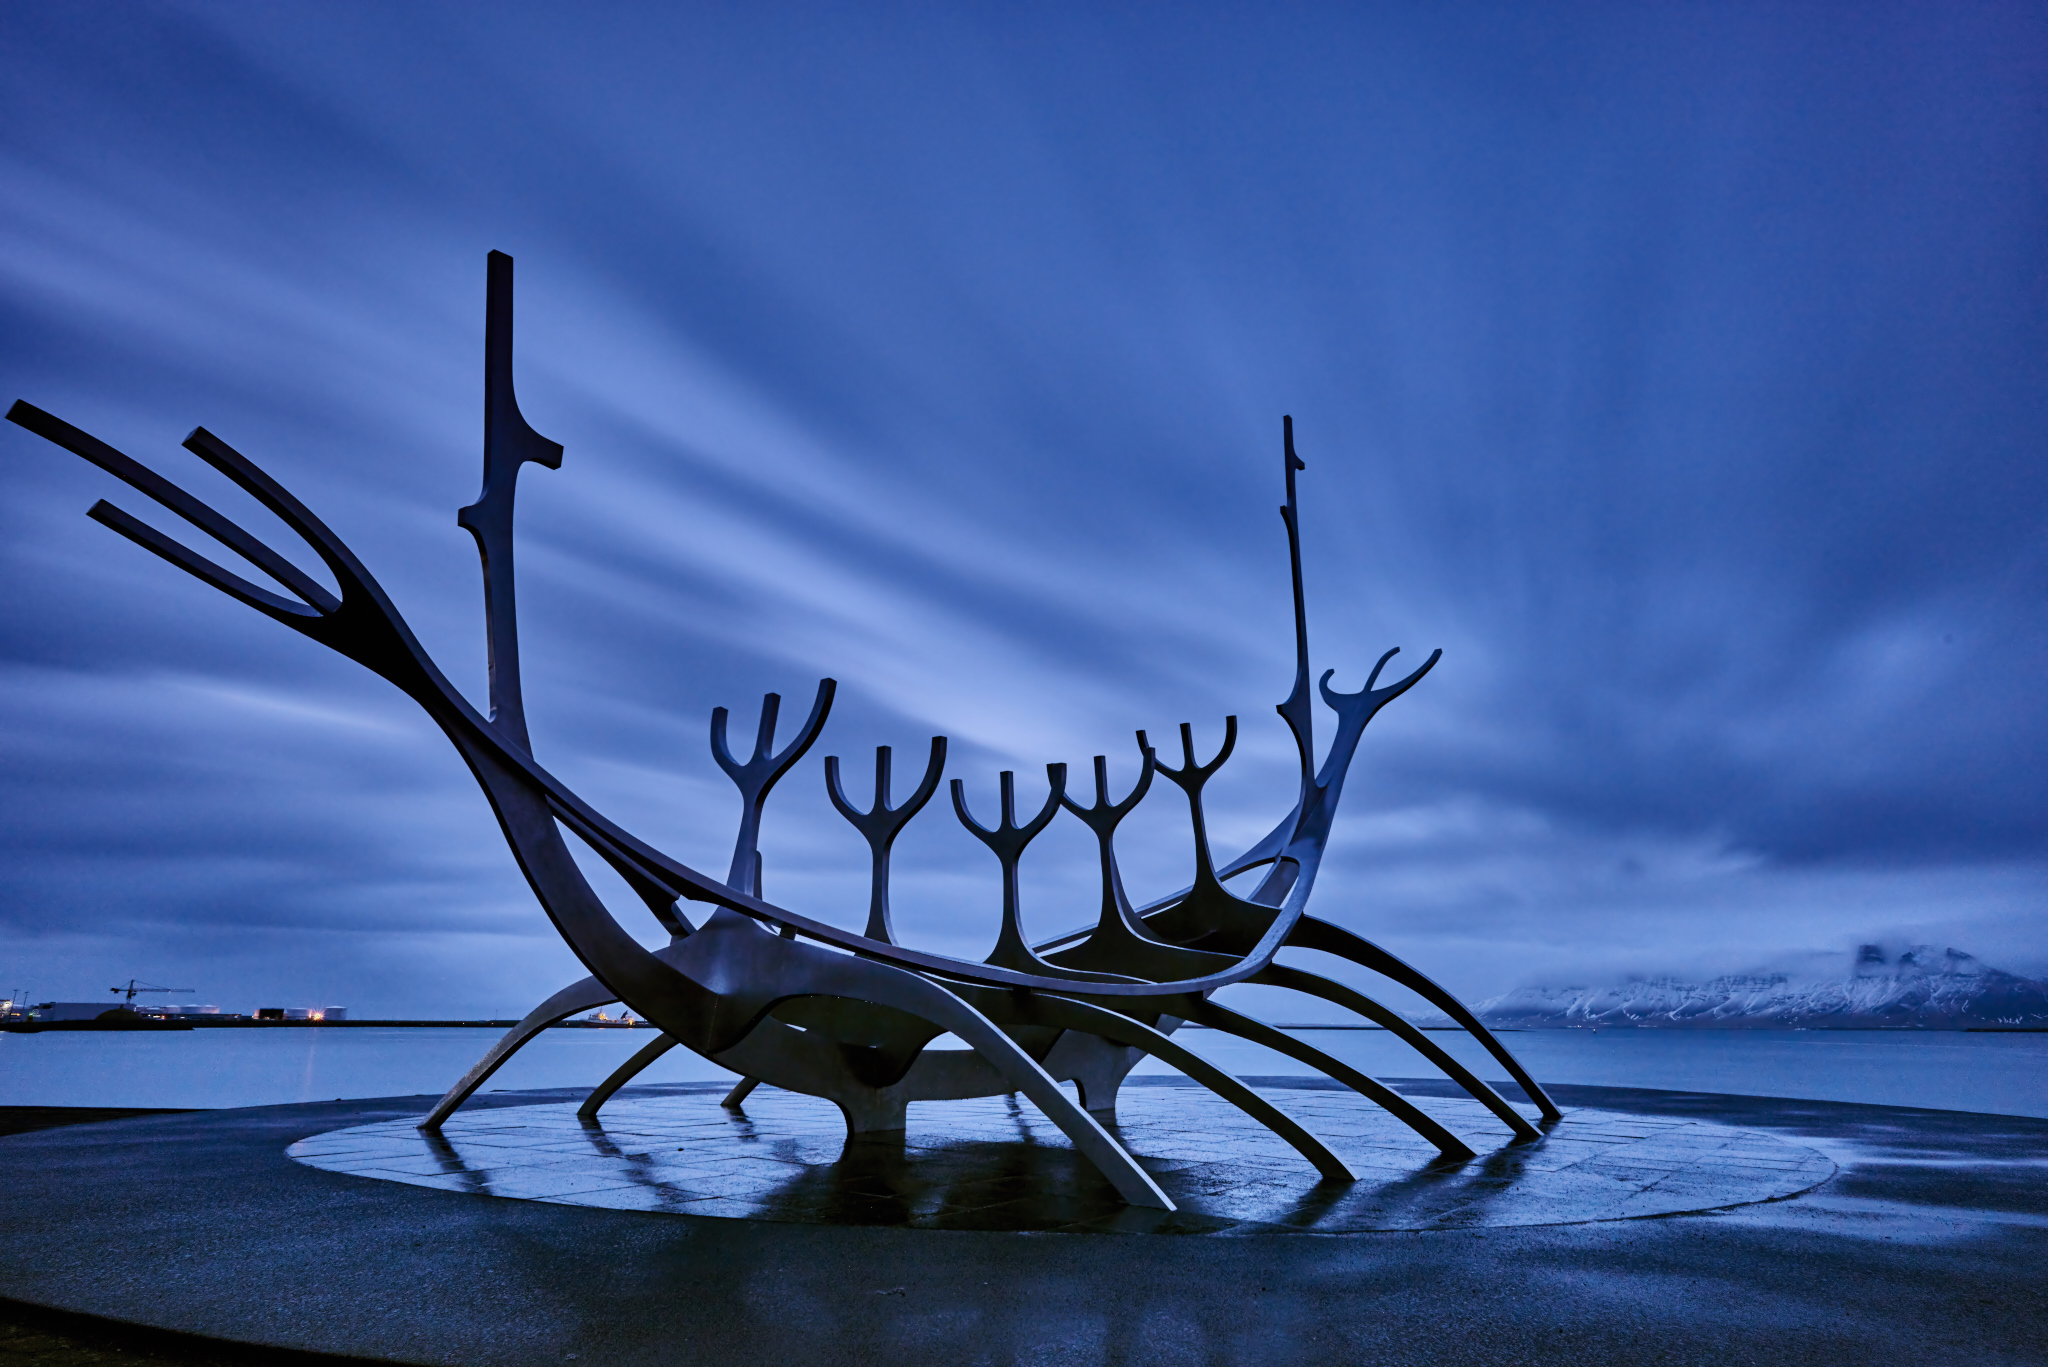 The Sun Voyager_x2048.jpg